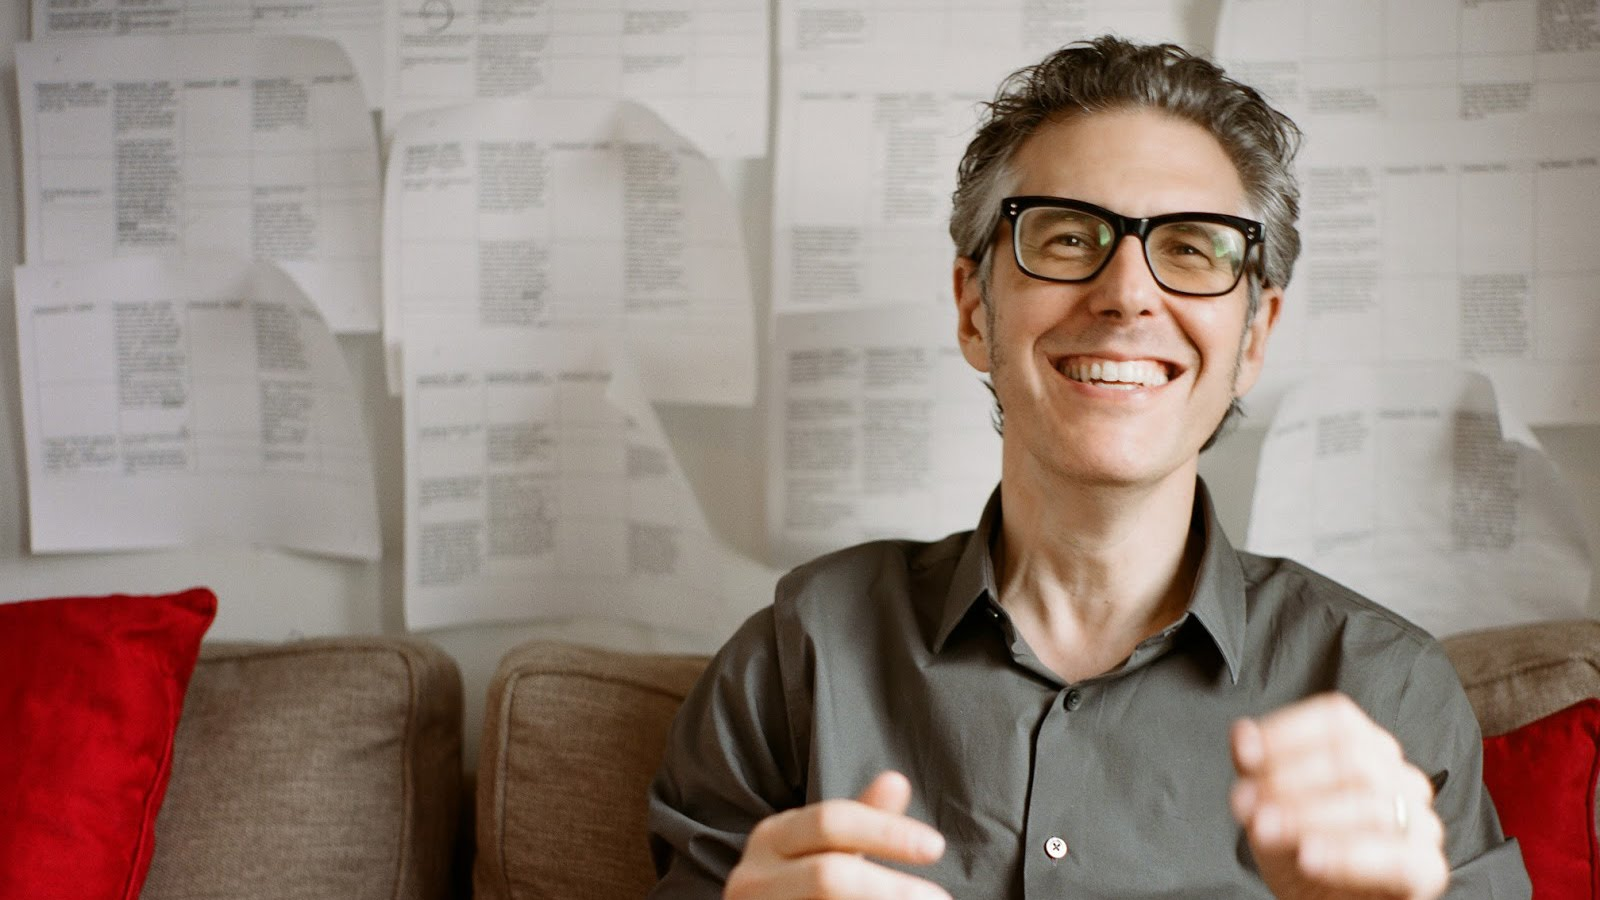 #AVIARDTIP - IRA GLASS GIVES A GREAT MESSAGE TO ALL CREATIVE PEOPLE AT THE START OF THEIR CAREERS!